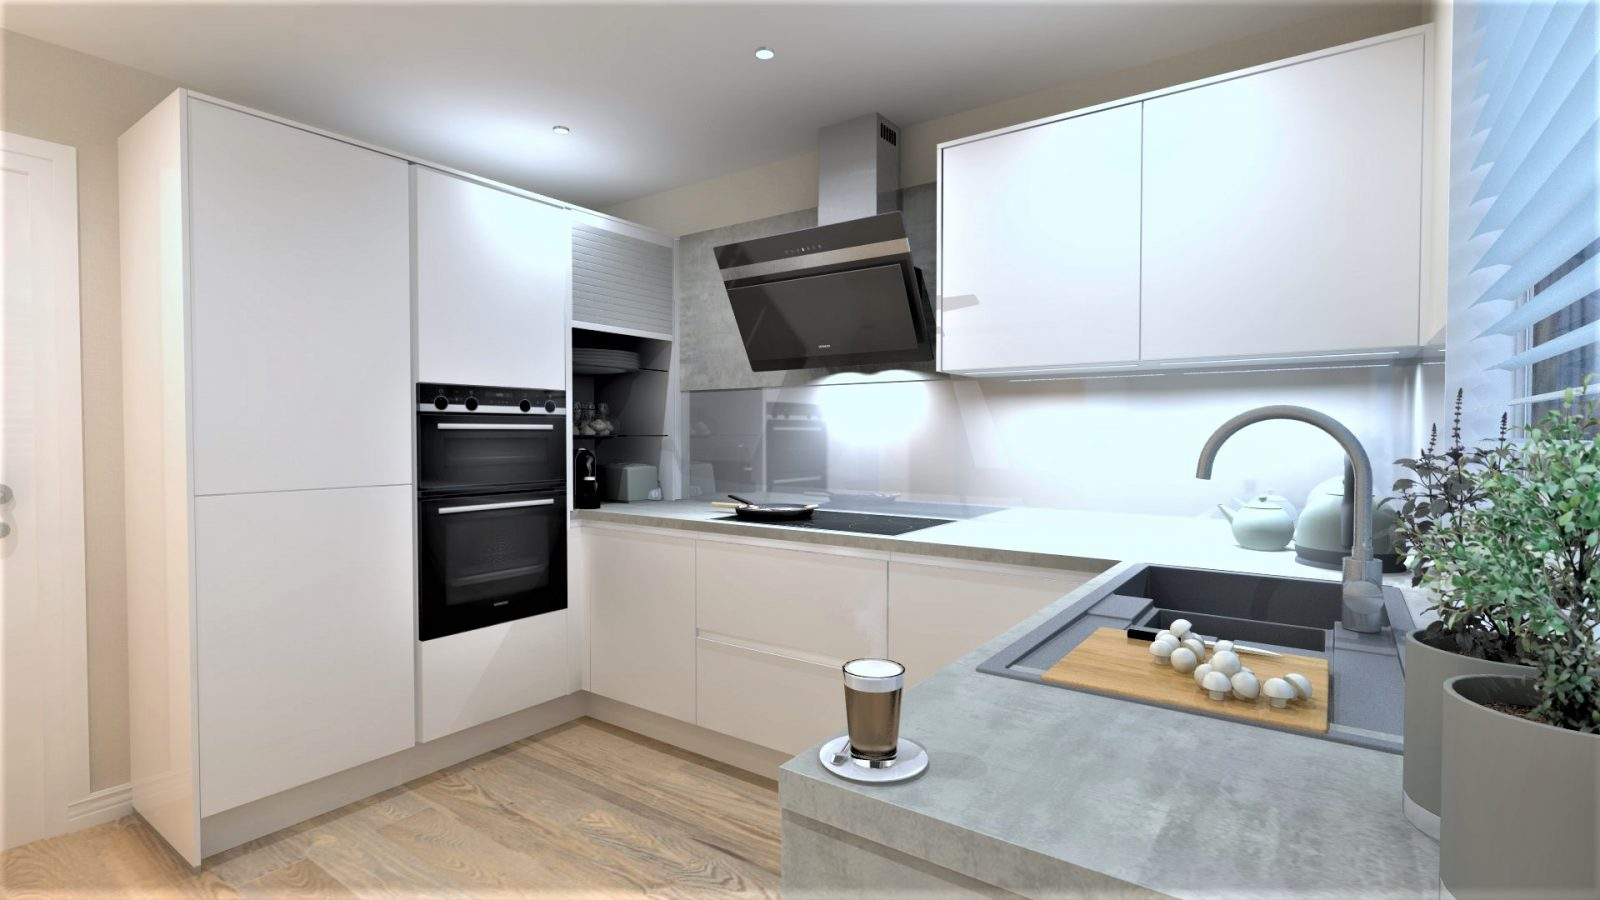 Choosing The Right Kitchen Style For Your Home